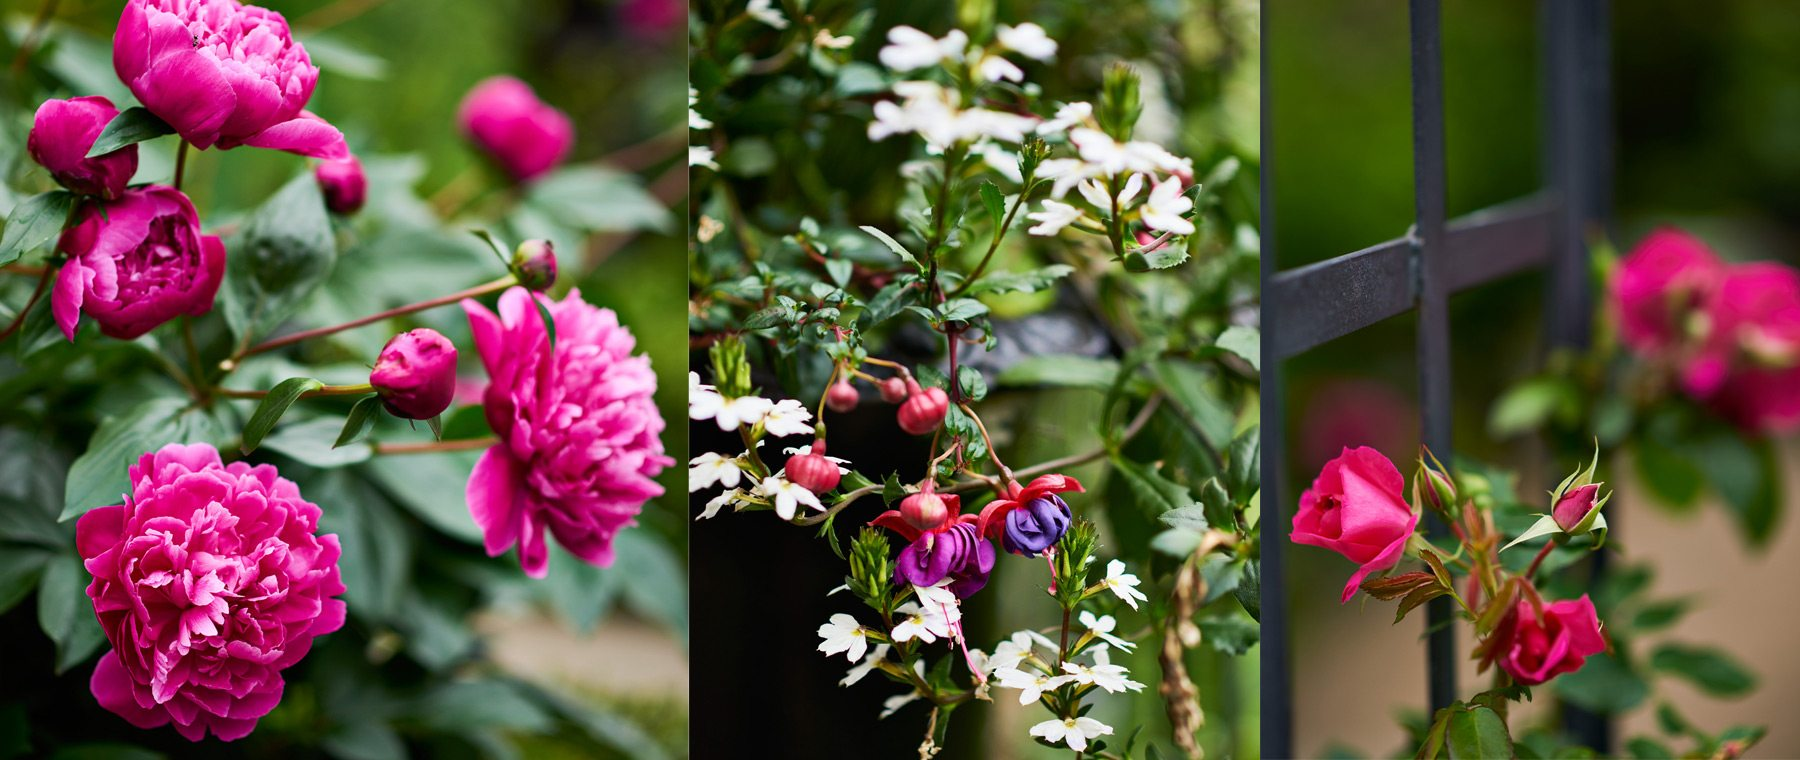 The garden is now known for its spring palette of pinks, whites, and purples.